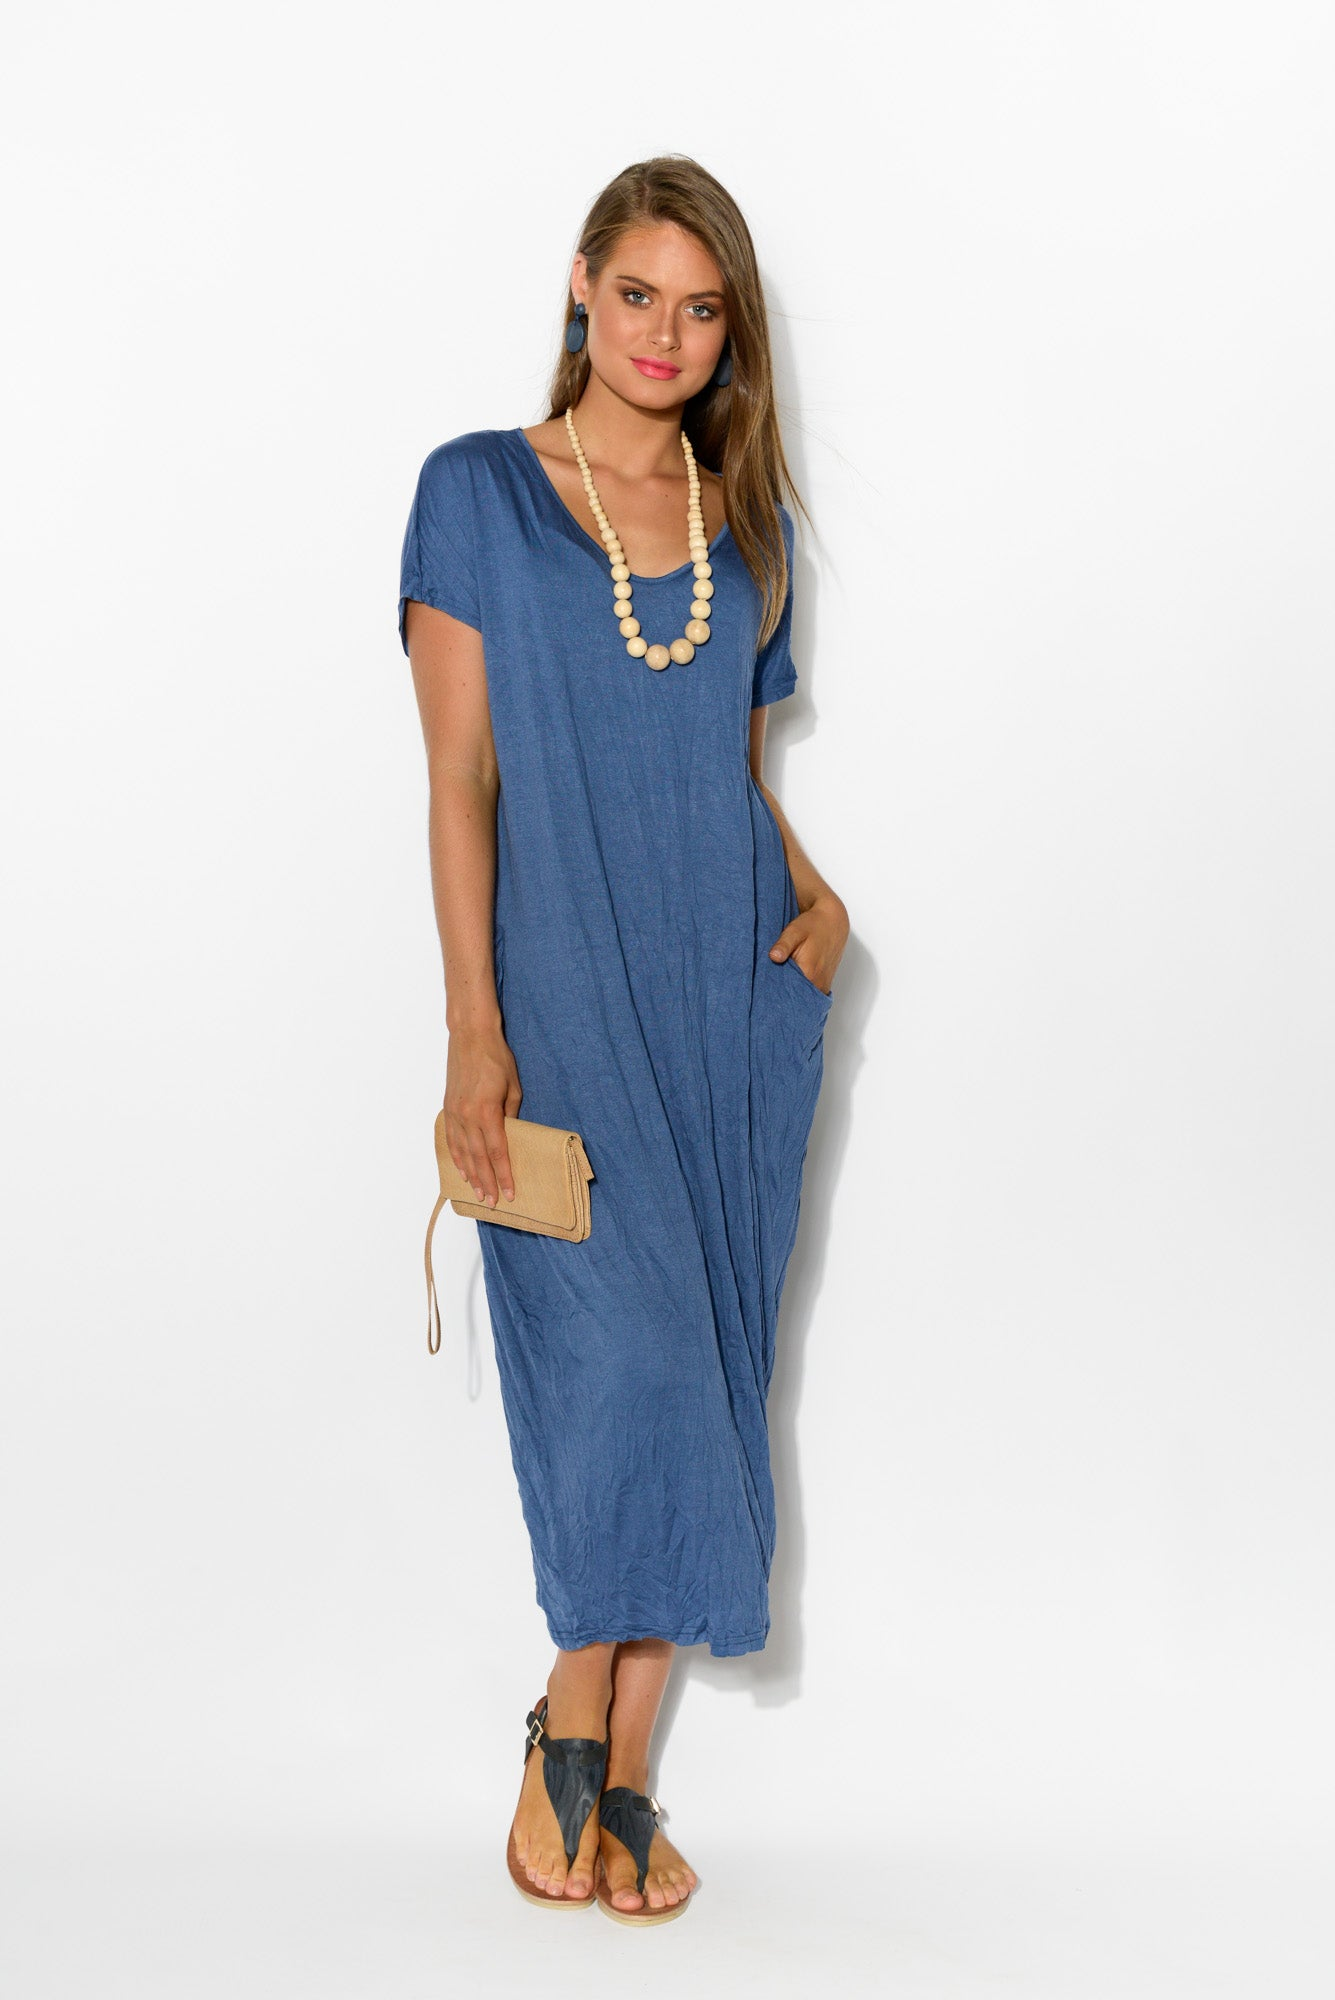 Blue Pocket Cotton Draped Dress - Blue Bungalow